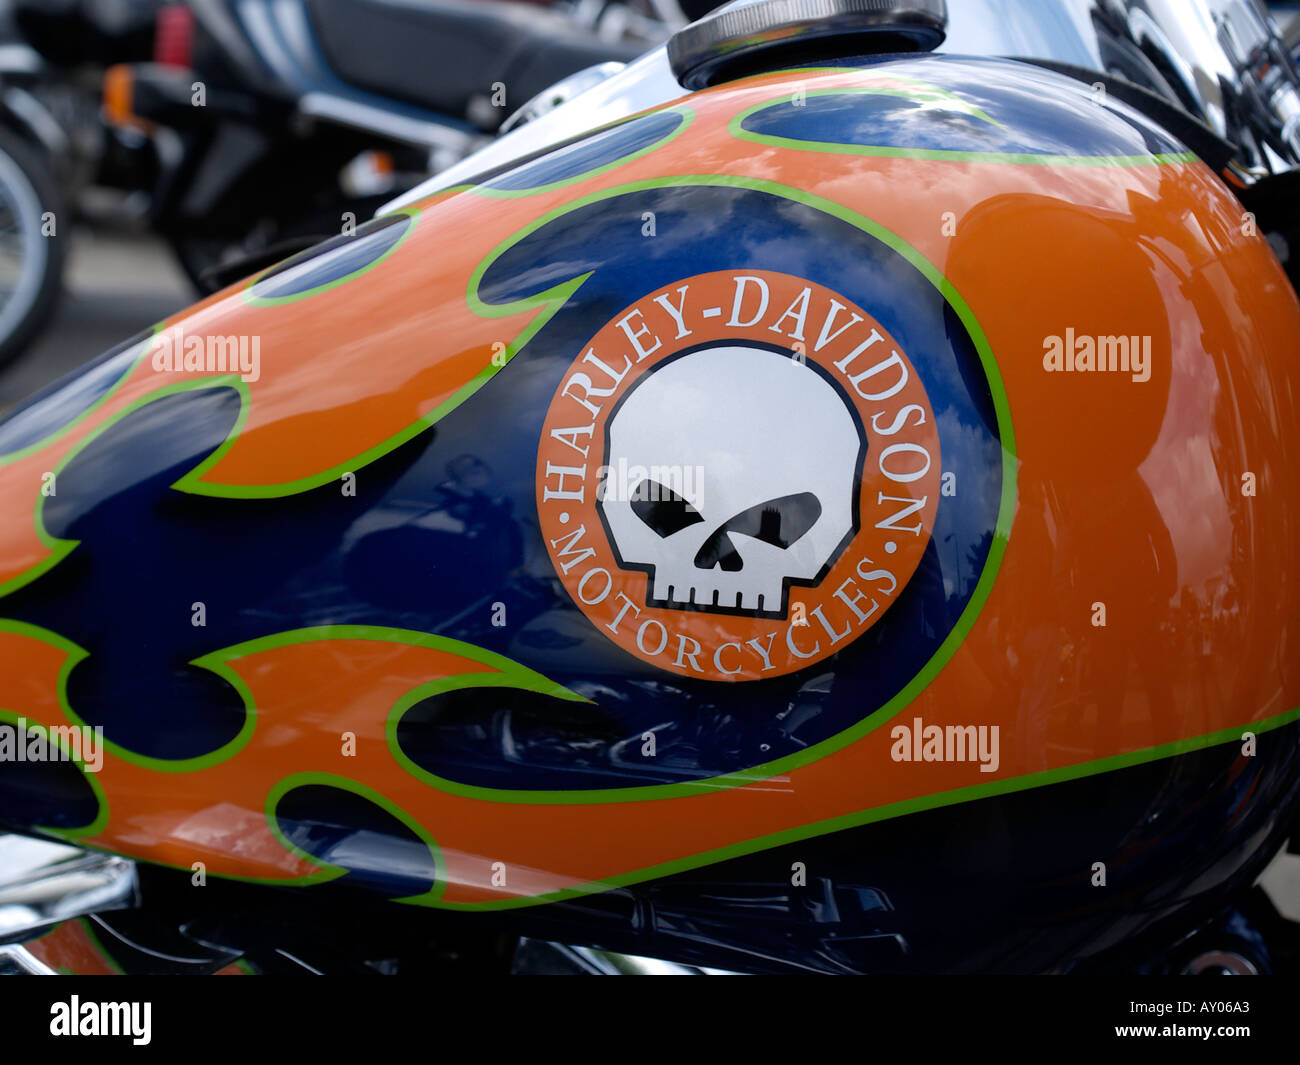 Harley Davidson Custom Paint Job High Resolution Stock Photography And Images Alamy